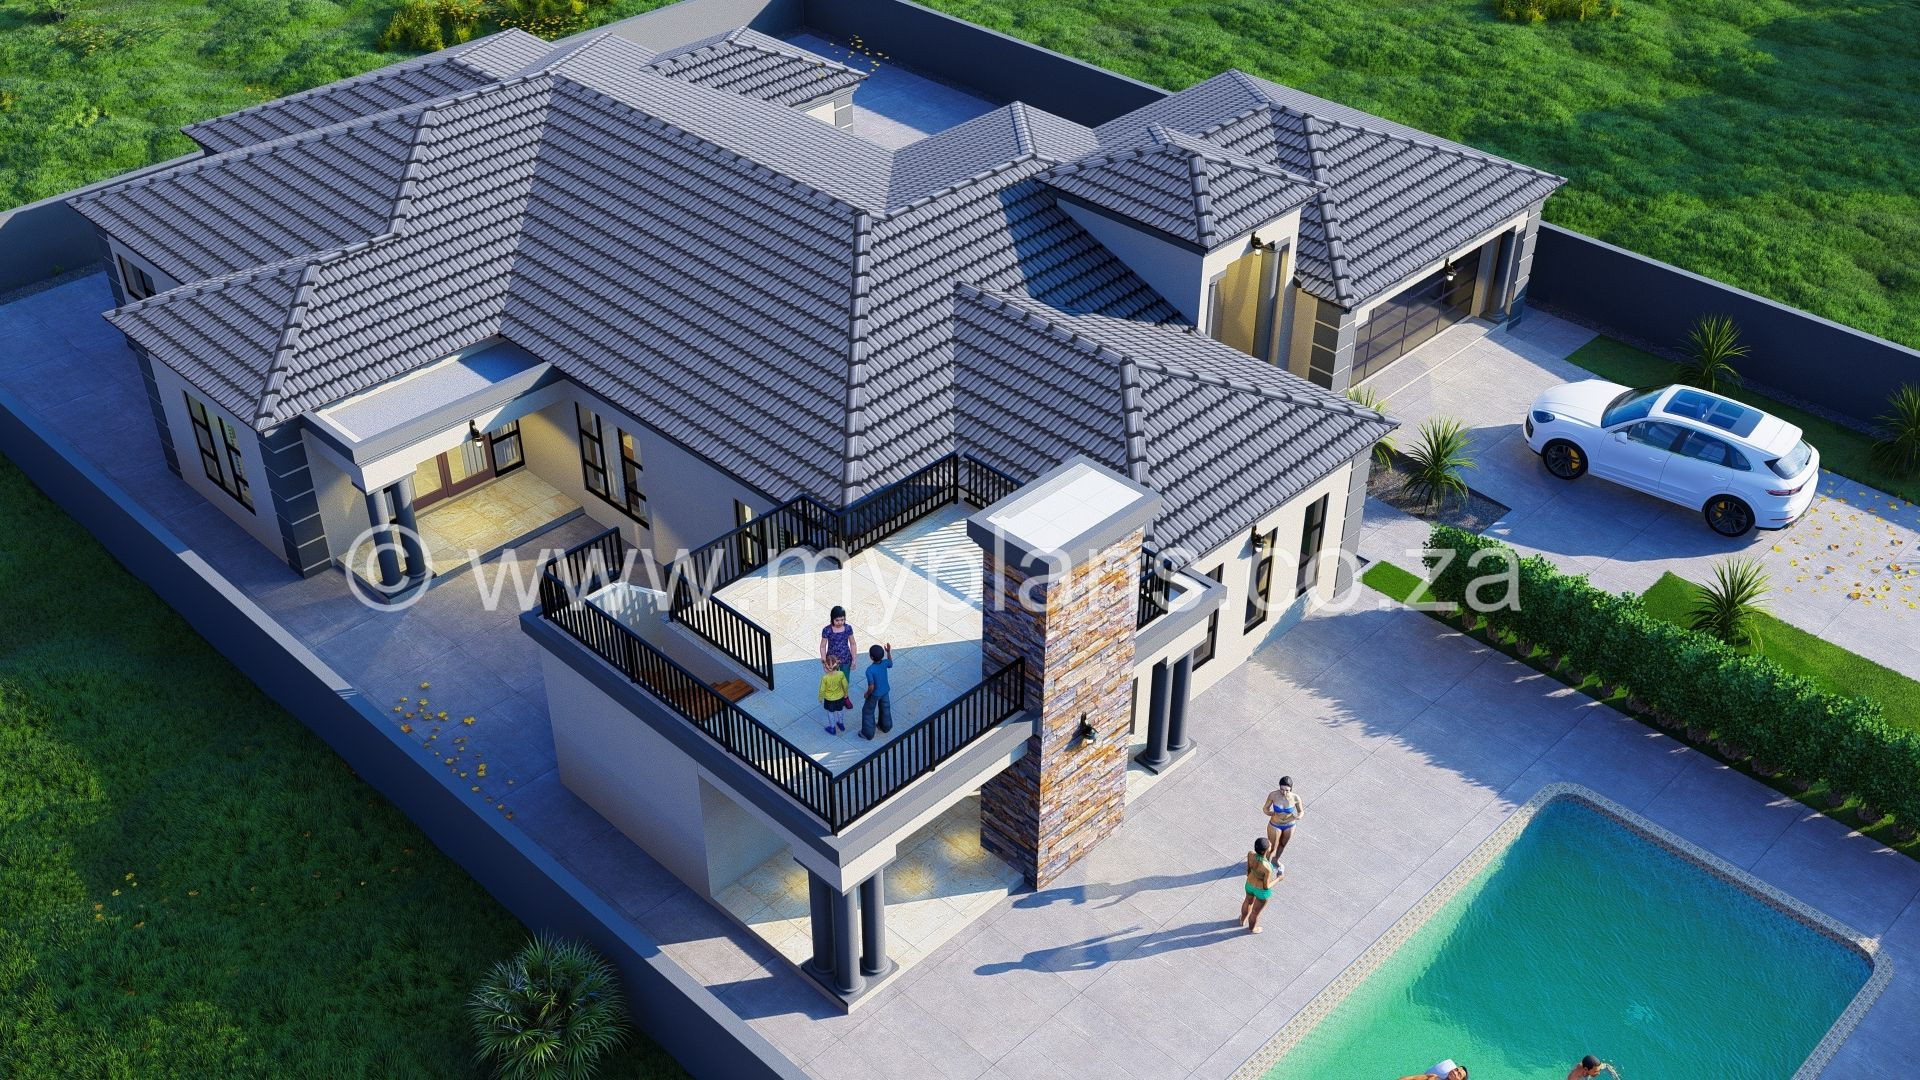 4 Bedroom House Plan Bla 021 10s Bedroom House Plans House Plans South Africa Double Storey House Plans